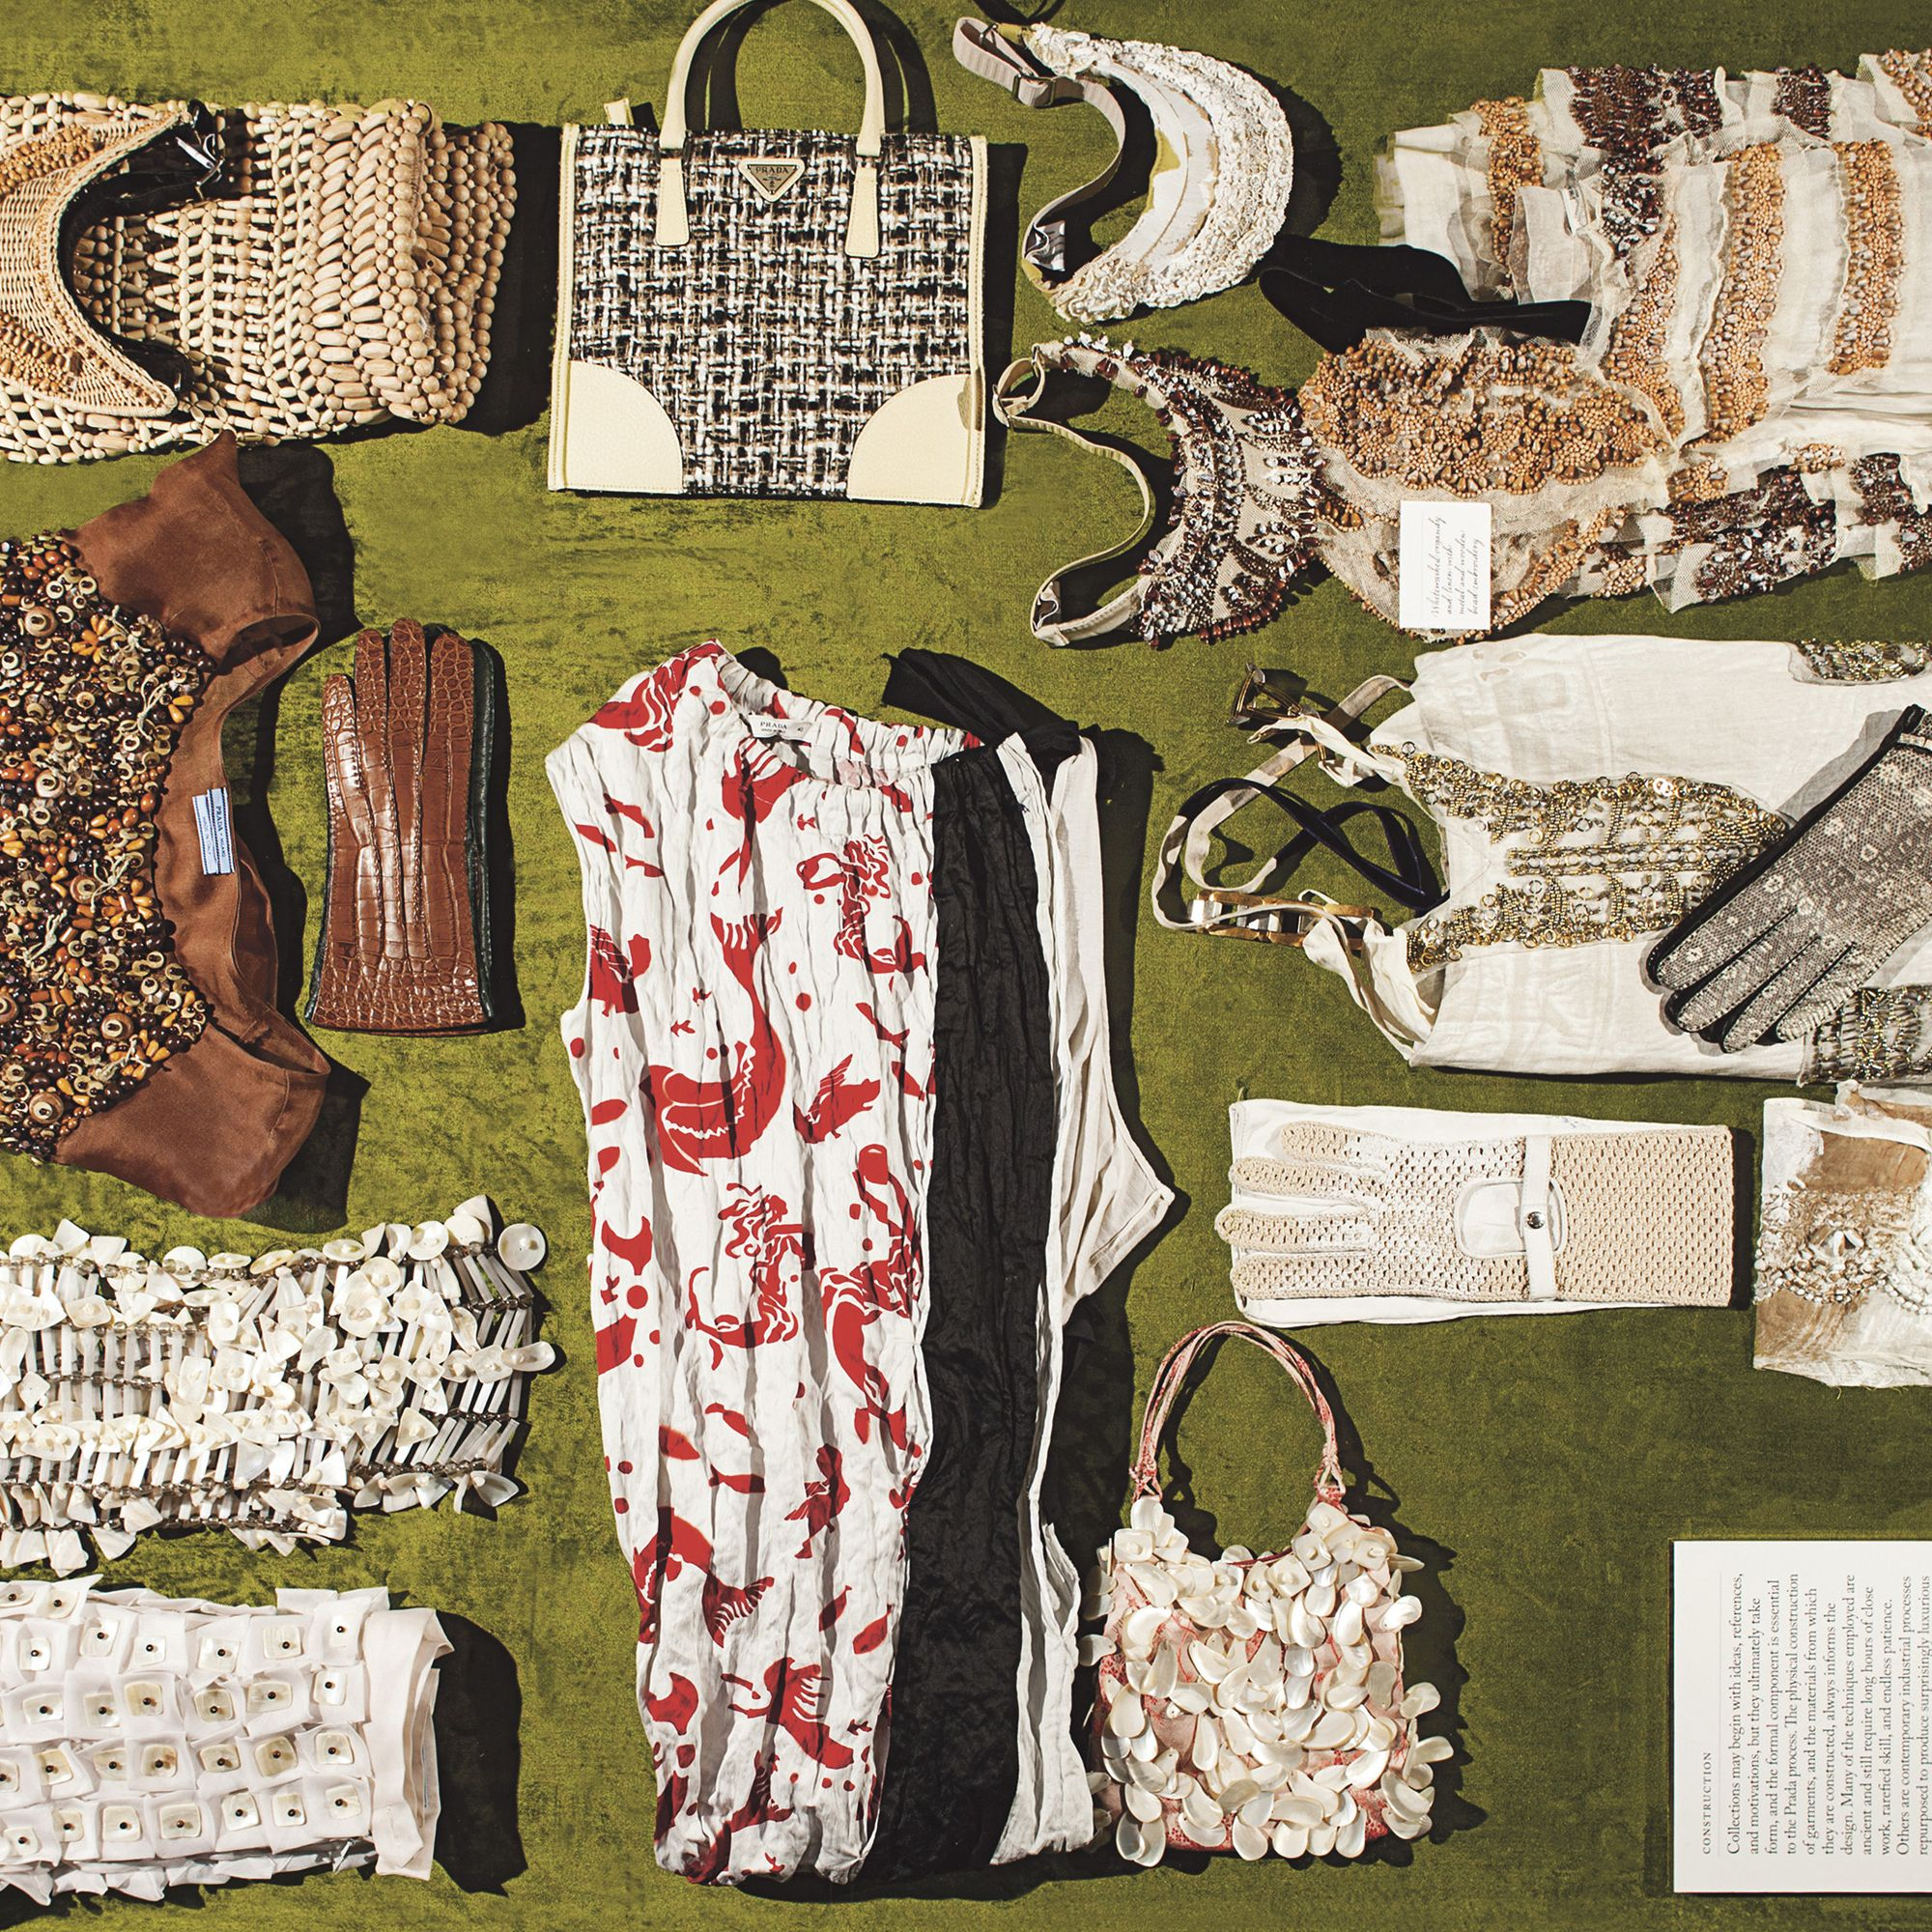 <p>An example of Miuccia Prada's technical work from the Construction section.</p><p> <!--EndFragment--></p>